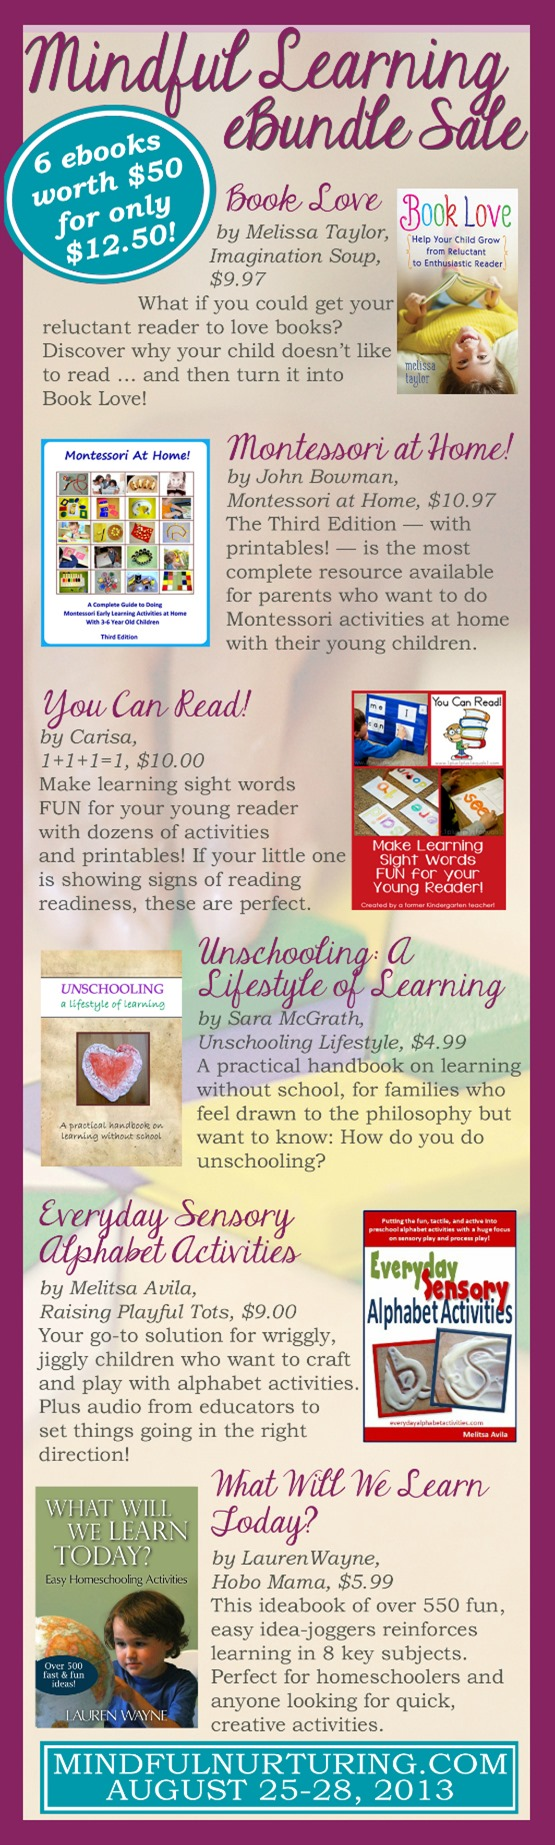 mindfullearning-items